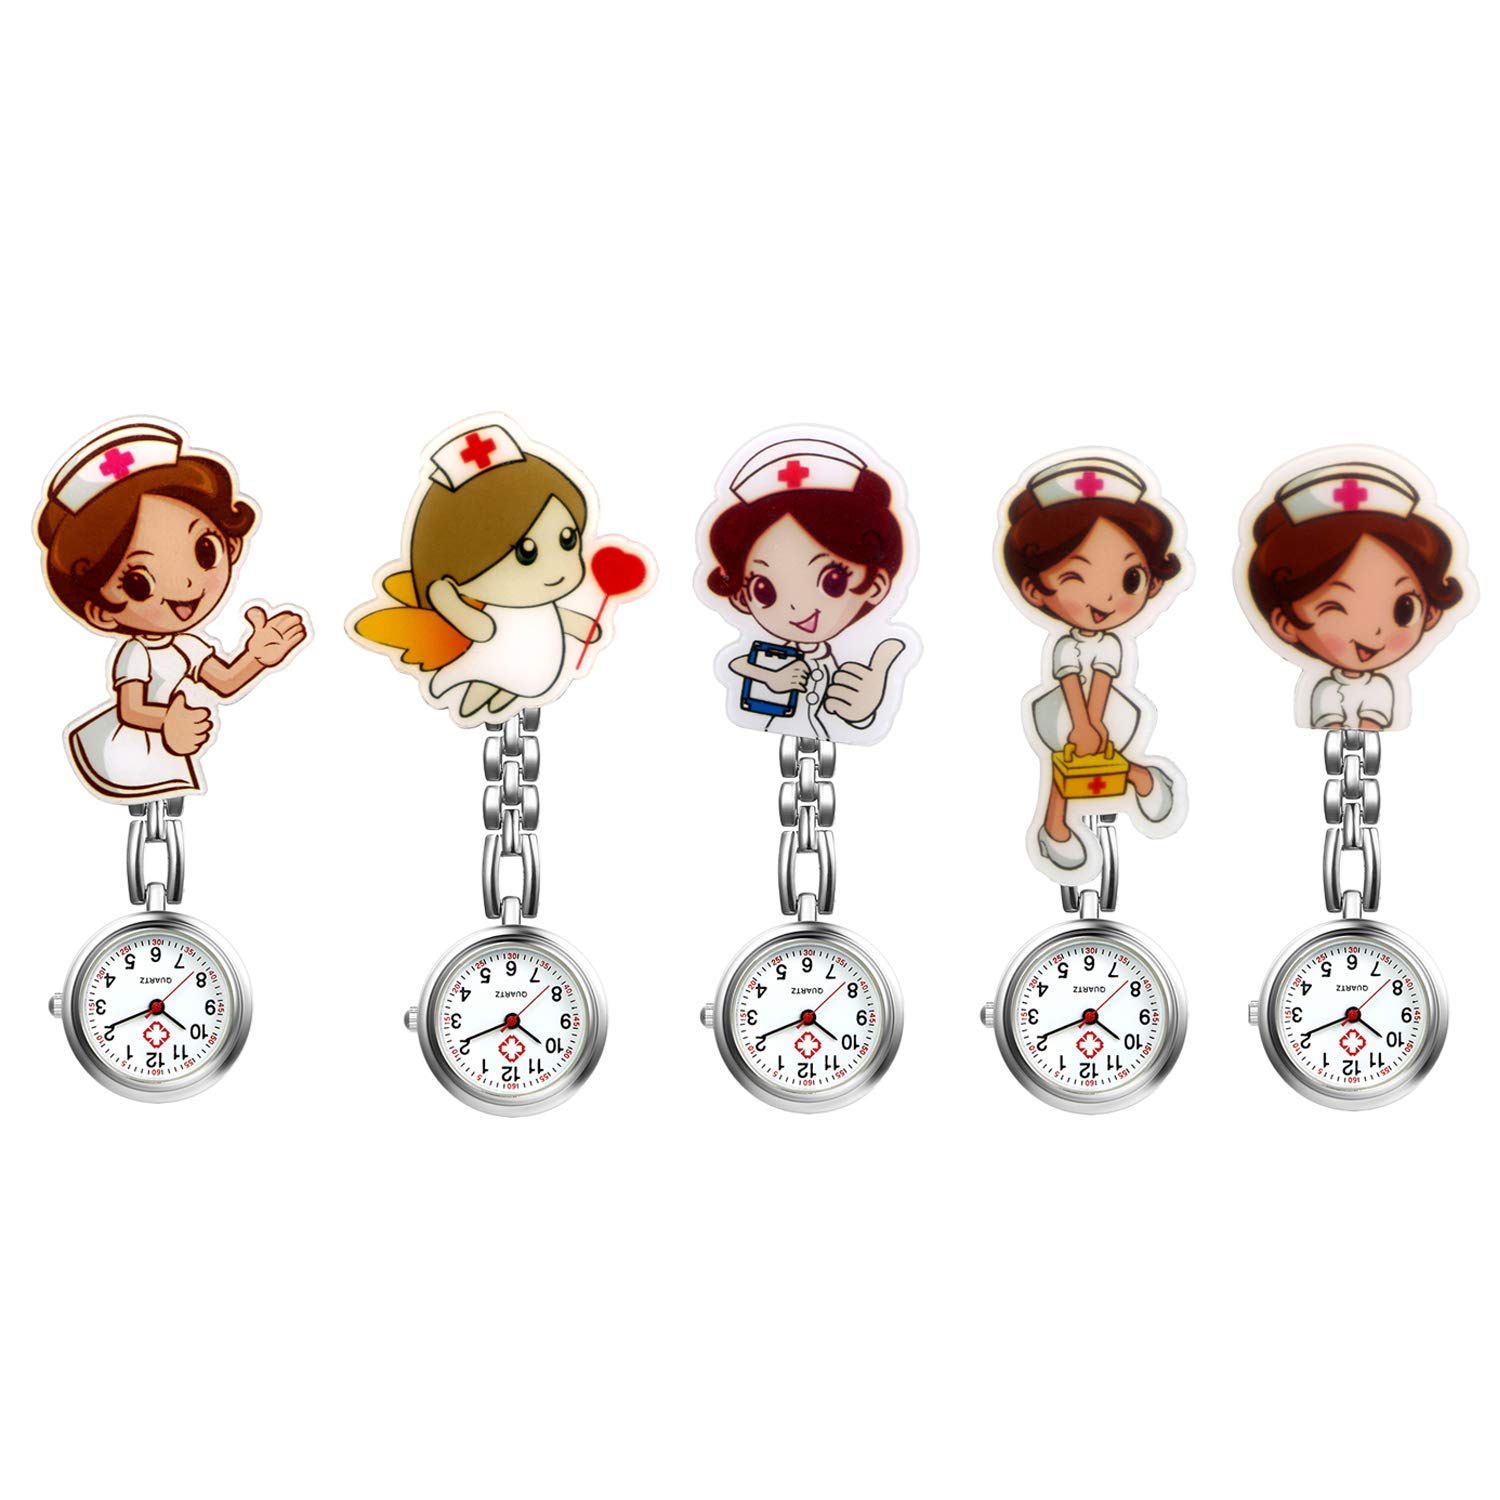 Avaner Pack of 5 Nurse Watch Health Care Nurse Doctor Paramedic Medical Brooch Fob Watch Brooch Metal Case with Pin/Clip by Avaner